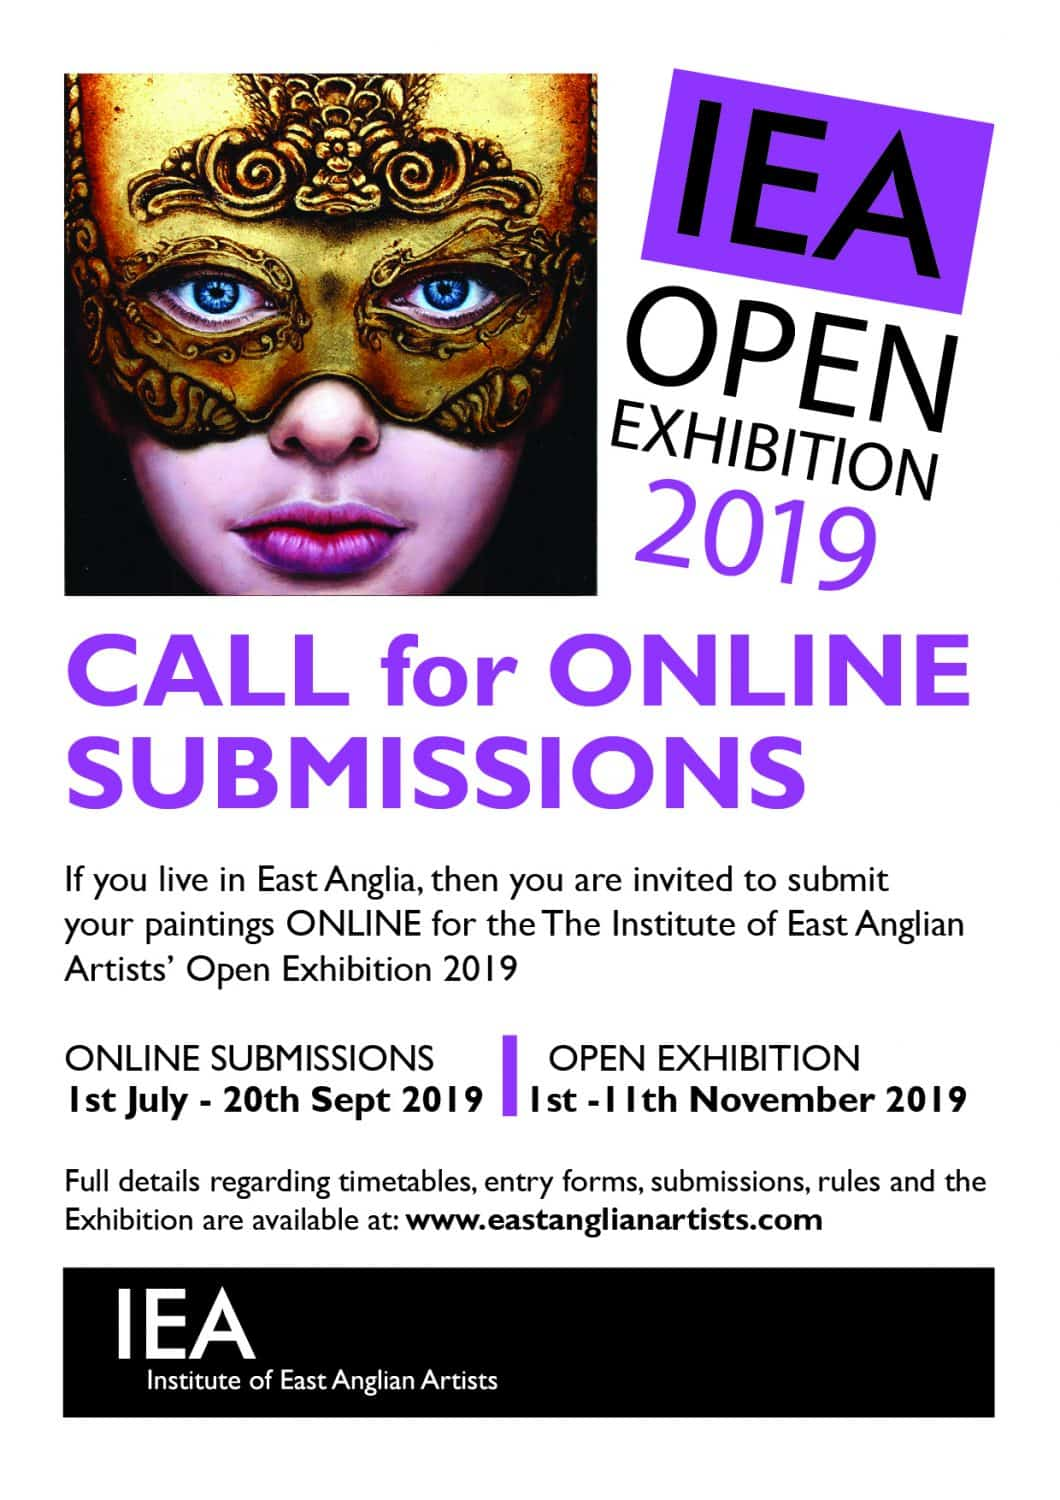 Annual Open Exhibition - Institute of East Anglian Artists